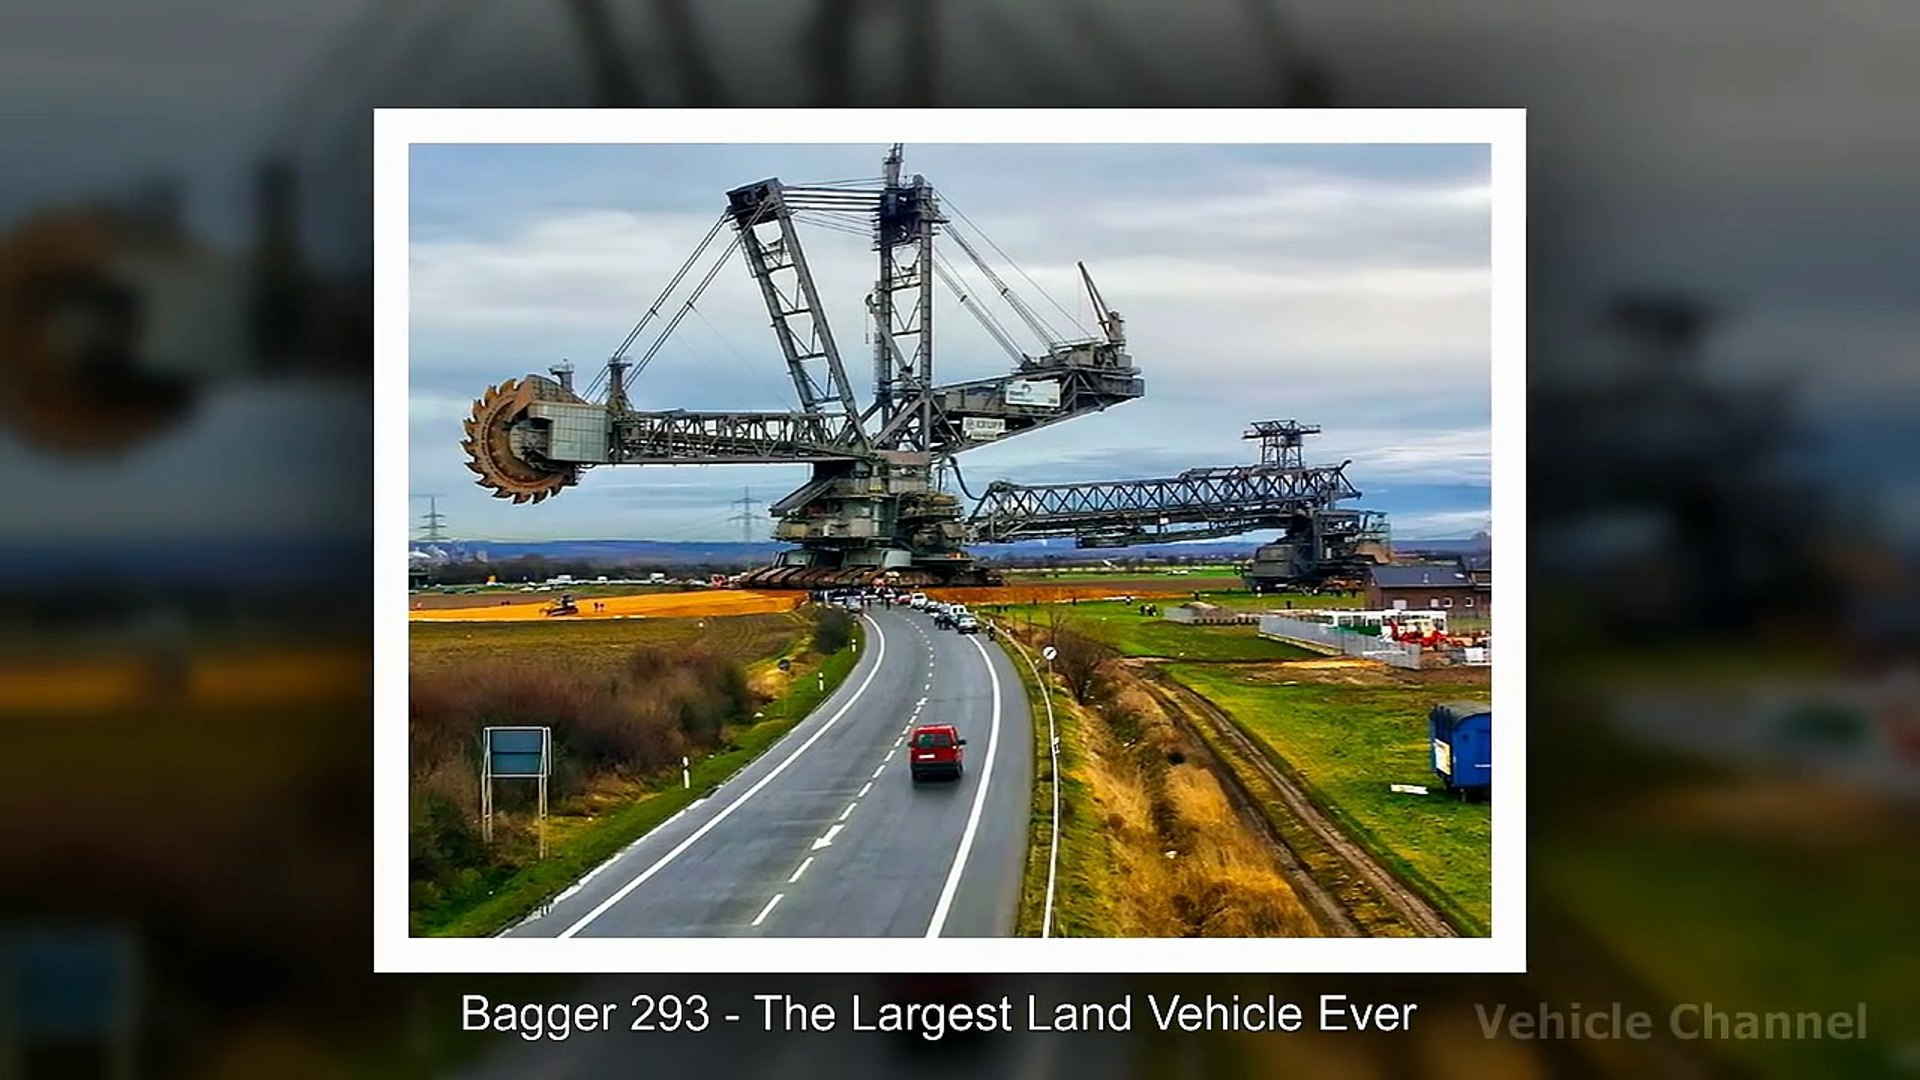 The Largest Land Vehicle Ever Bagger 293 Bucket Wheel Excavator Video Dailymotion